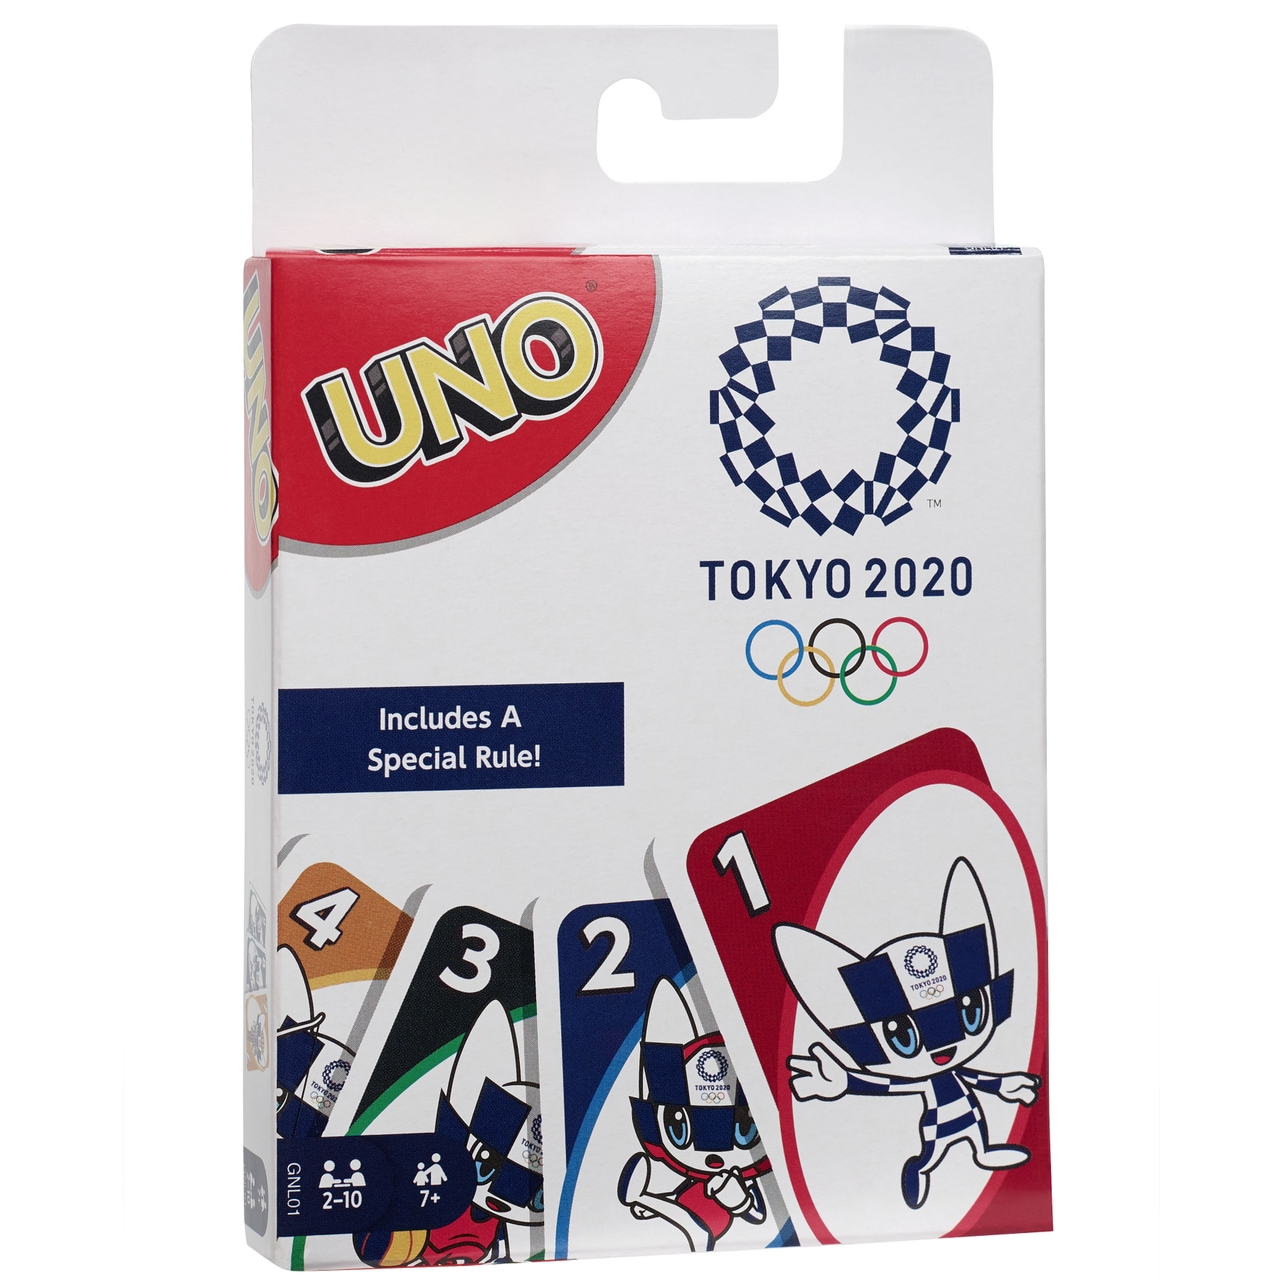 UNO® celebrating Olympic Games Tokyo 2020 with new special rule